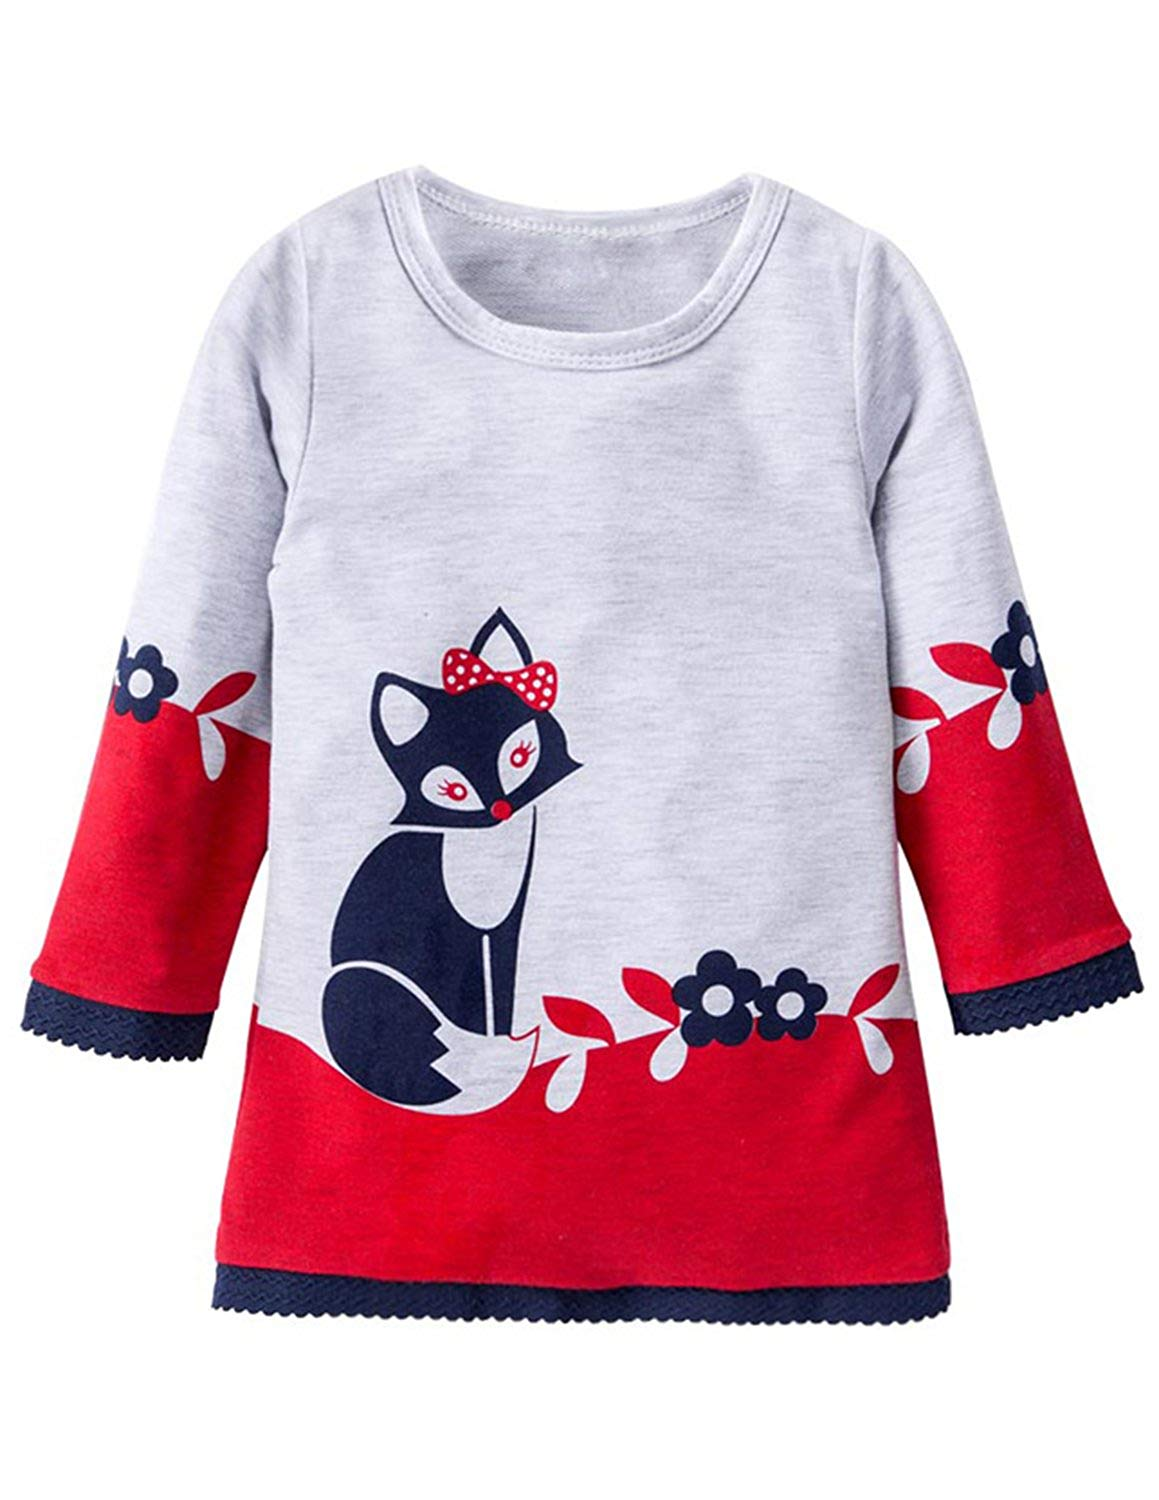 5a2993954bcd3 Get Quotations · JOLIFEI Little Girls Cute Dress Cartoon Animal Print Long  Sleeve Lace Beach Party Tops Outfits